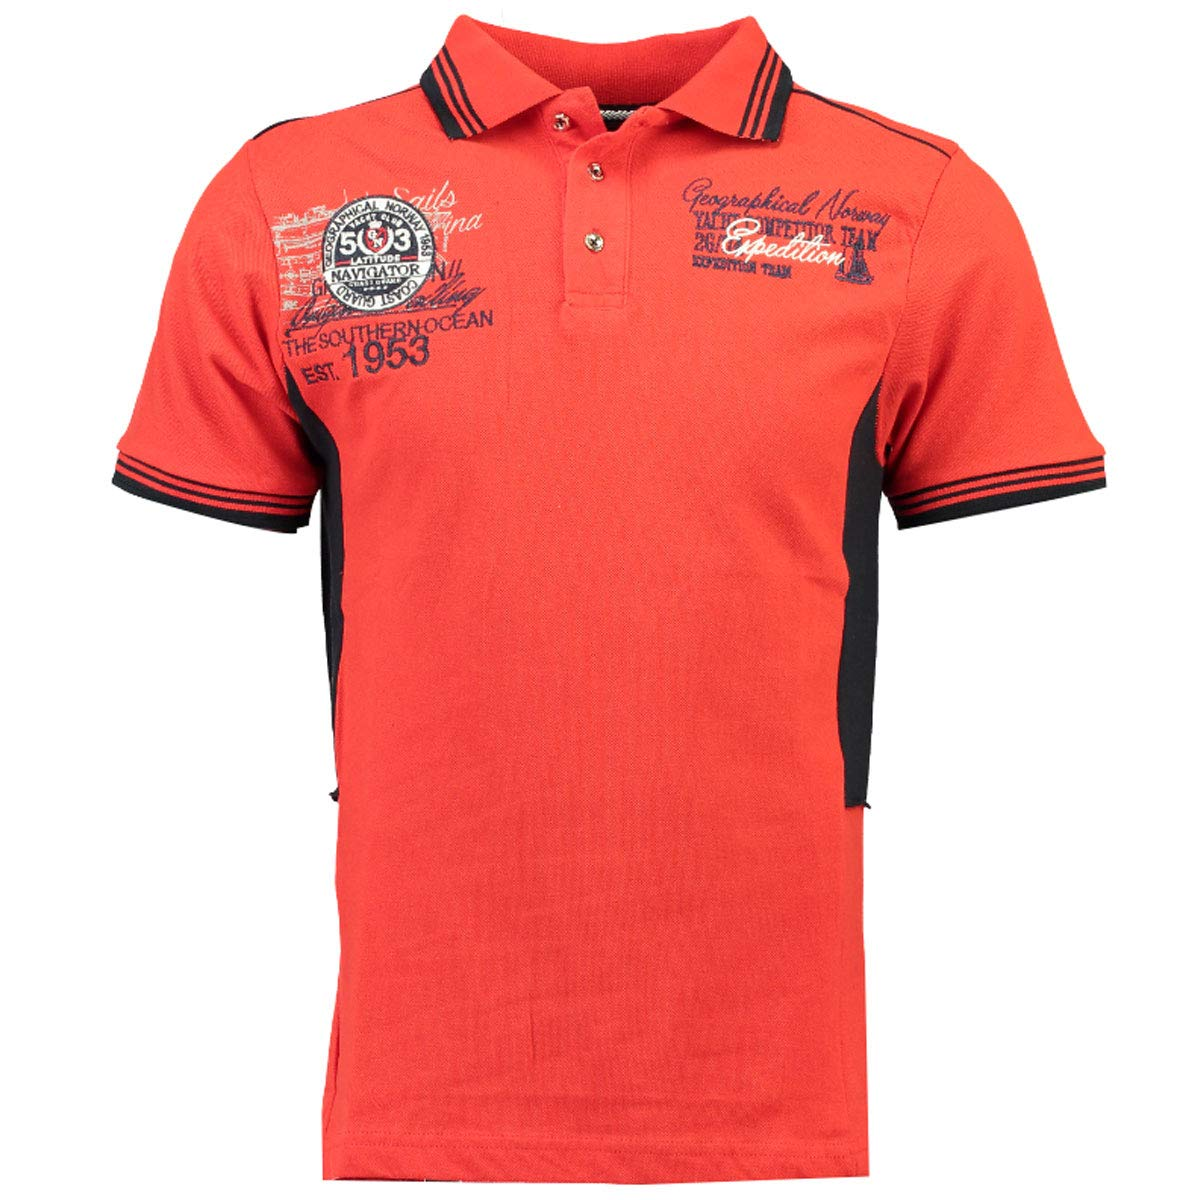 Geographic Norway Kling SS Hombres Polo Camisa, SR035H/GN, Rojo ...